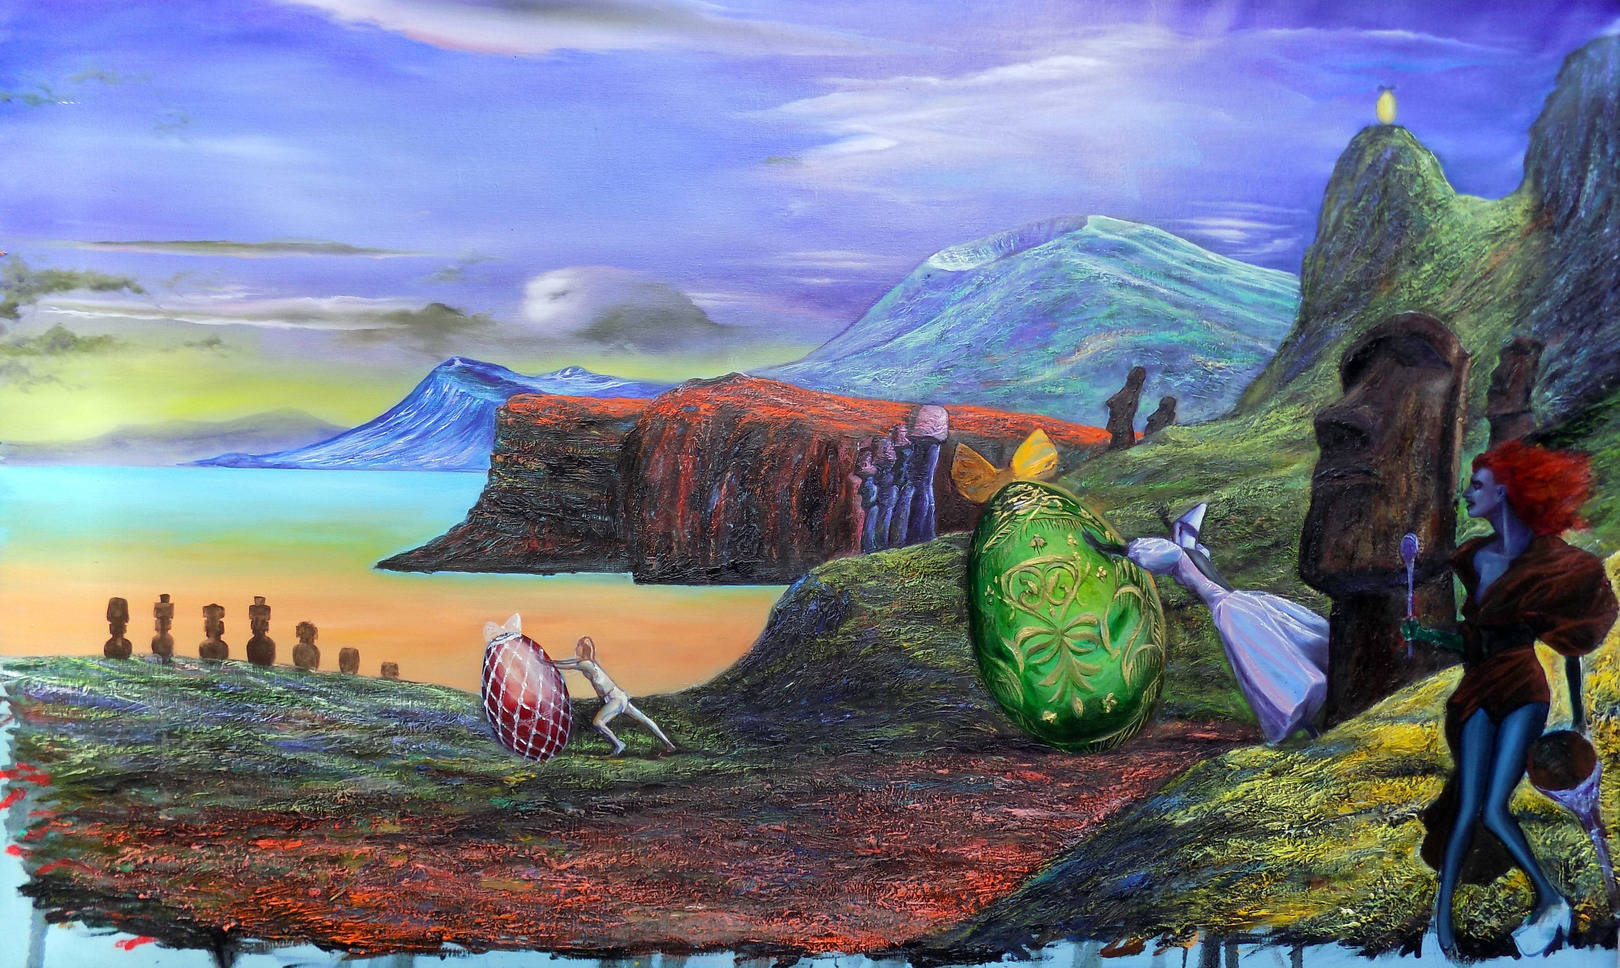 week end at the  Eater island   130x97cm